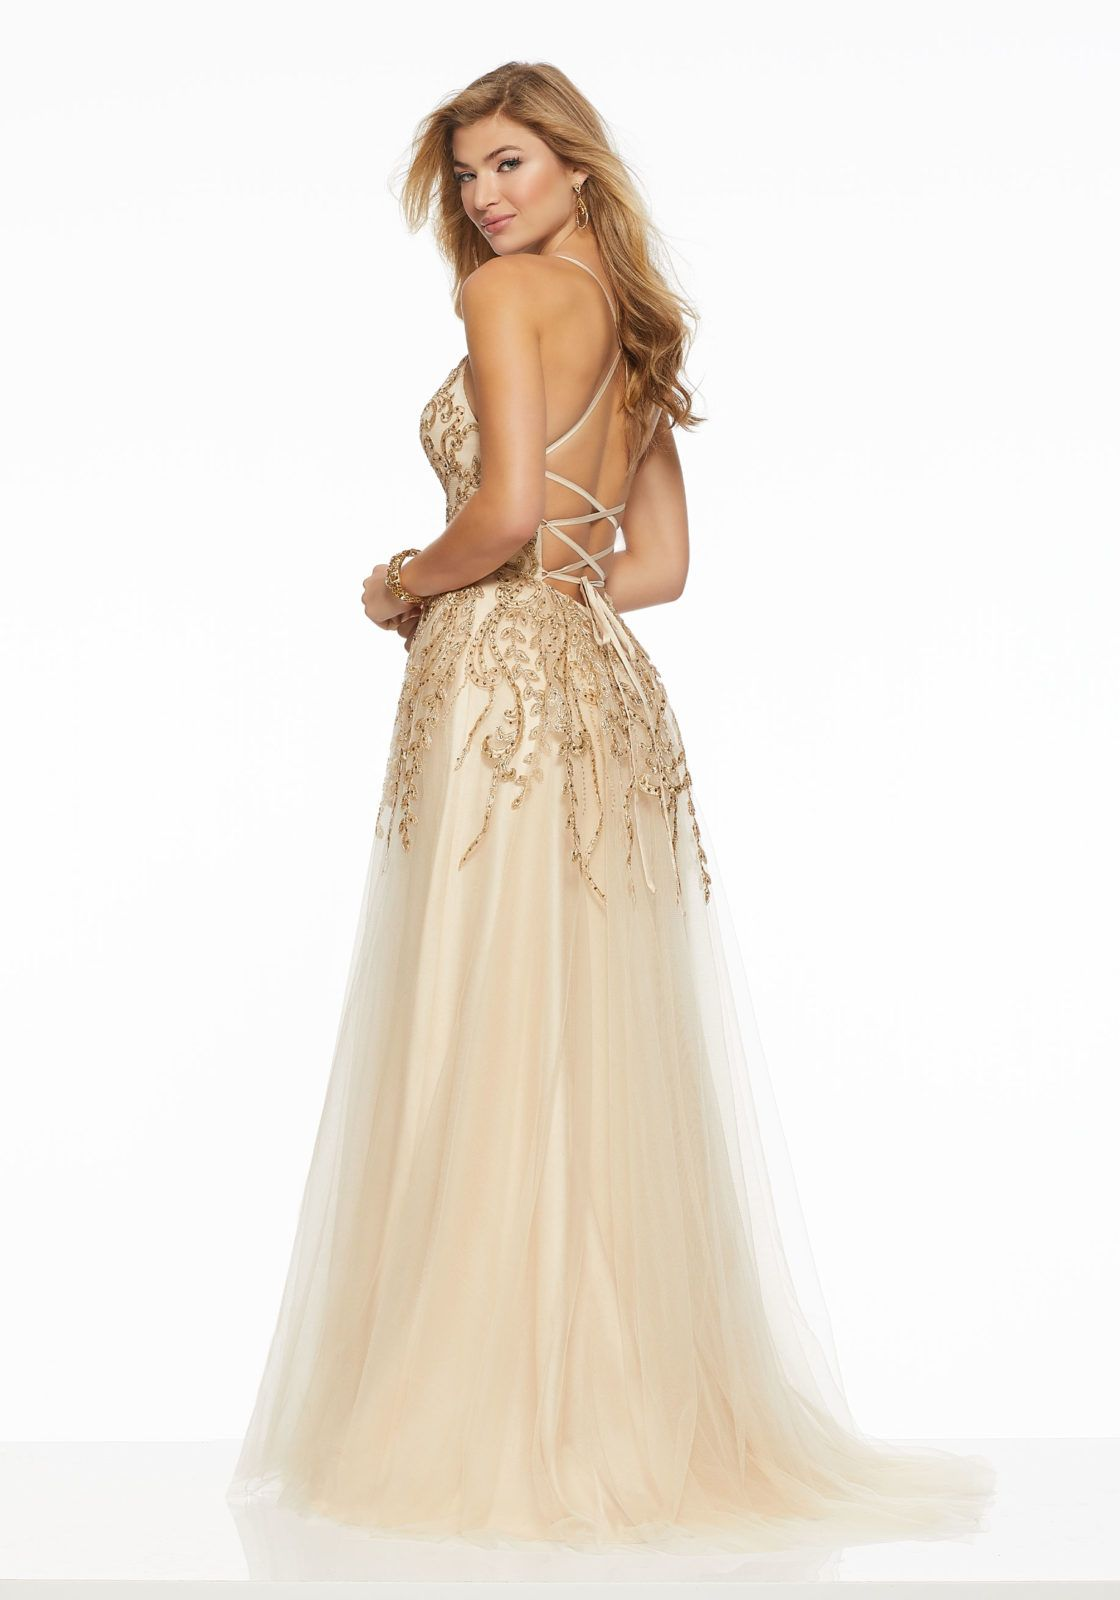 Embroidered Appliqués on Soft Tulle Wedding Dress   Morilee